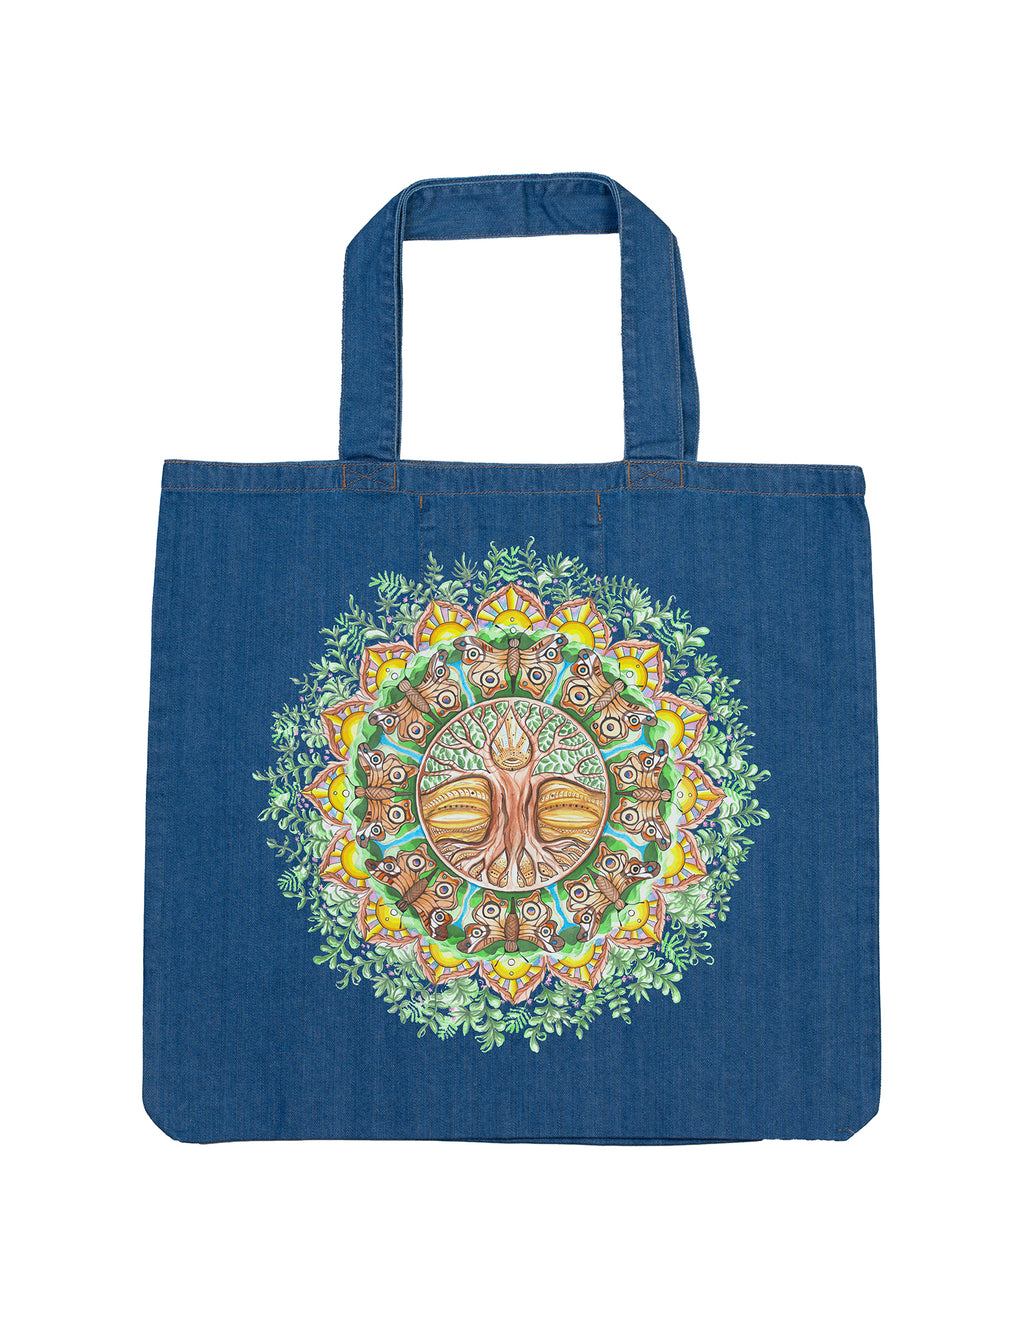 Roots and Wings Organic Denim Tote